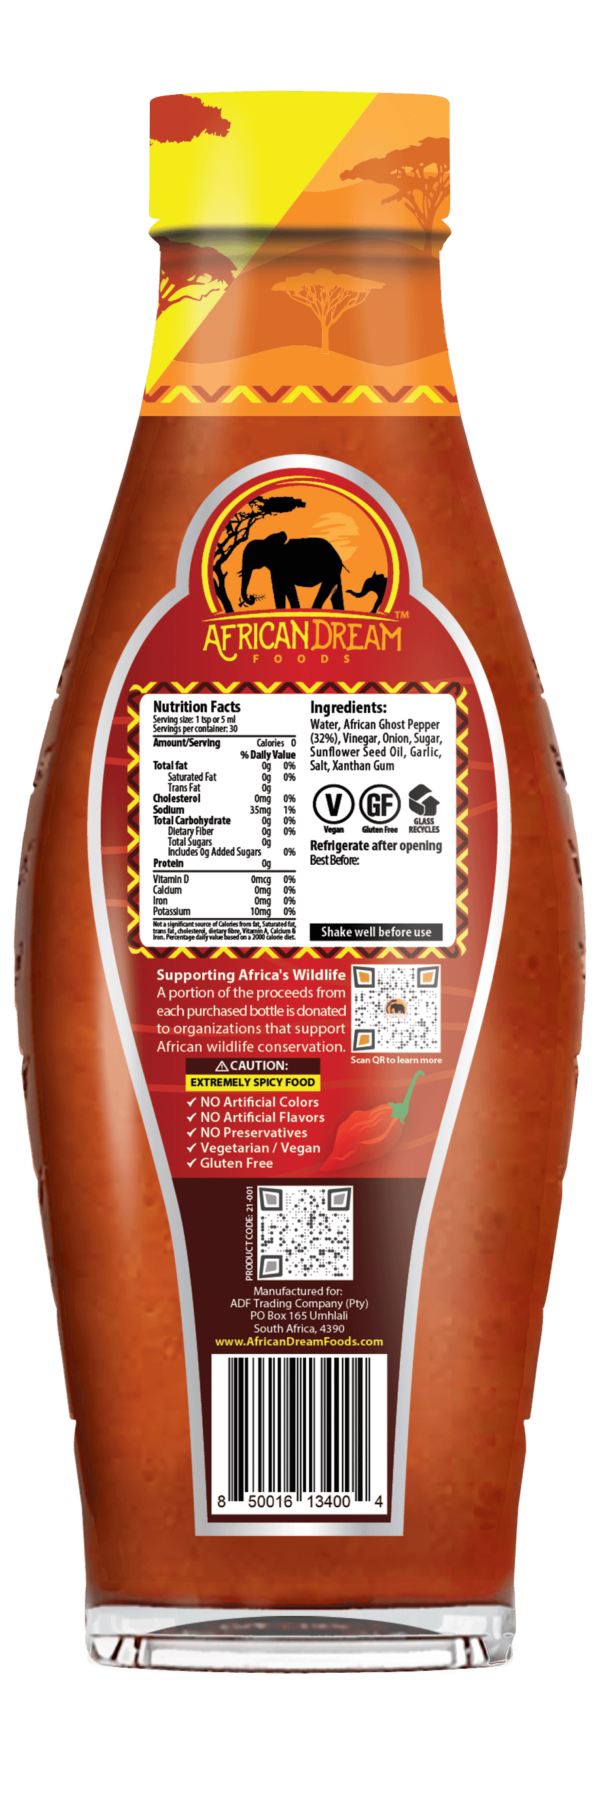 African Ghost Pepper Hot Sauce Back view